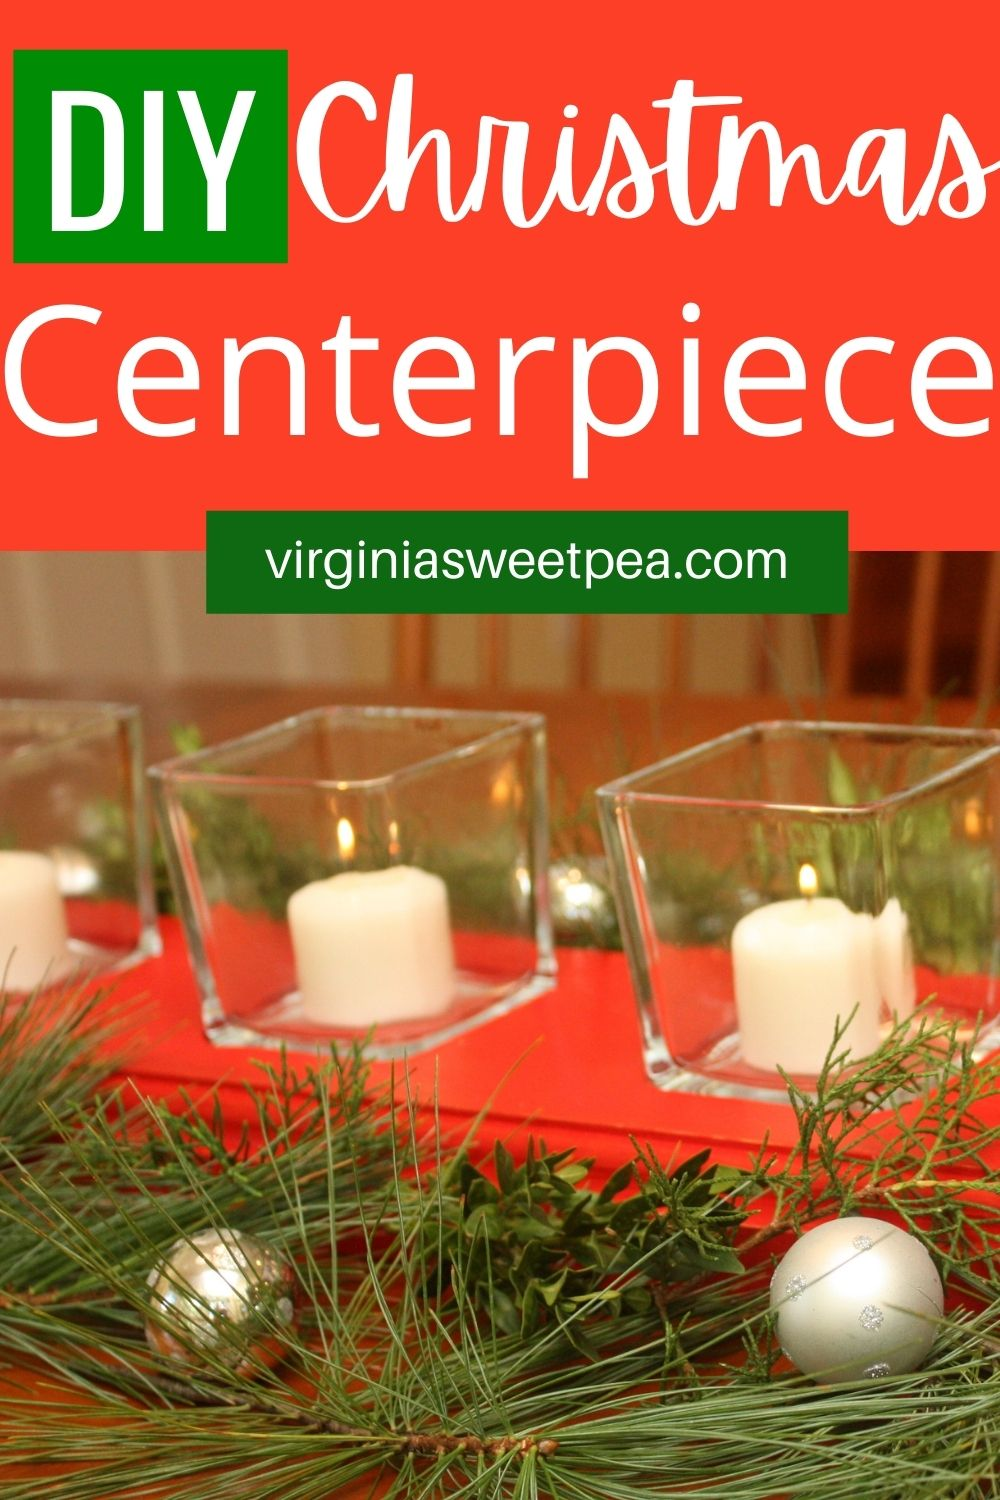 DIY Christmas Centerpiece - Learn how to make a DIY recessed glass votive holder centerpiece to use on a table as a centerpiece. Fill the glass votives with candles or decorate with greenery and Christmas balls. This centerpiece can be customized to use in any season by painting or staining it in a desired color. via @spaula